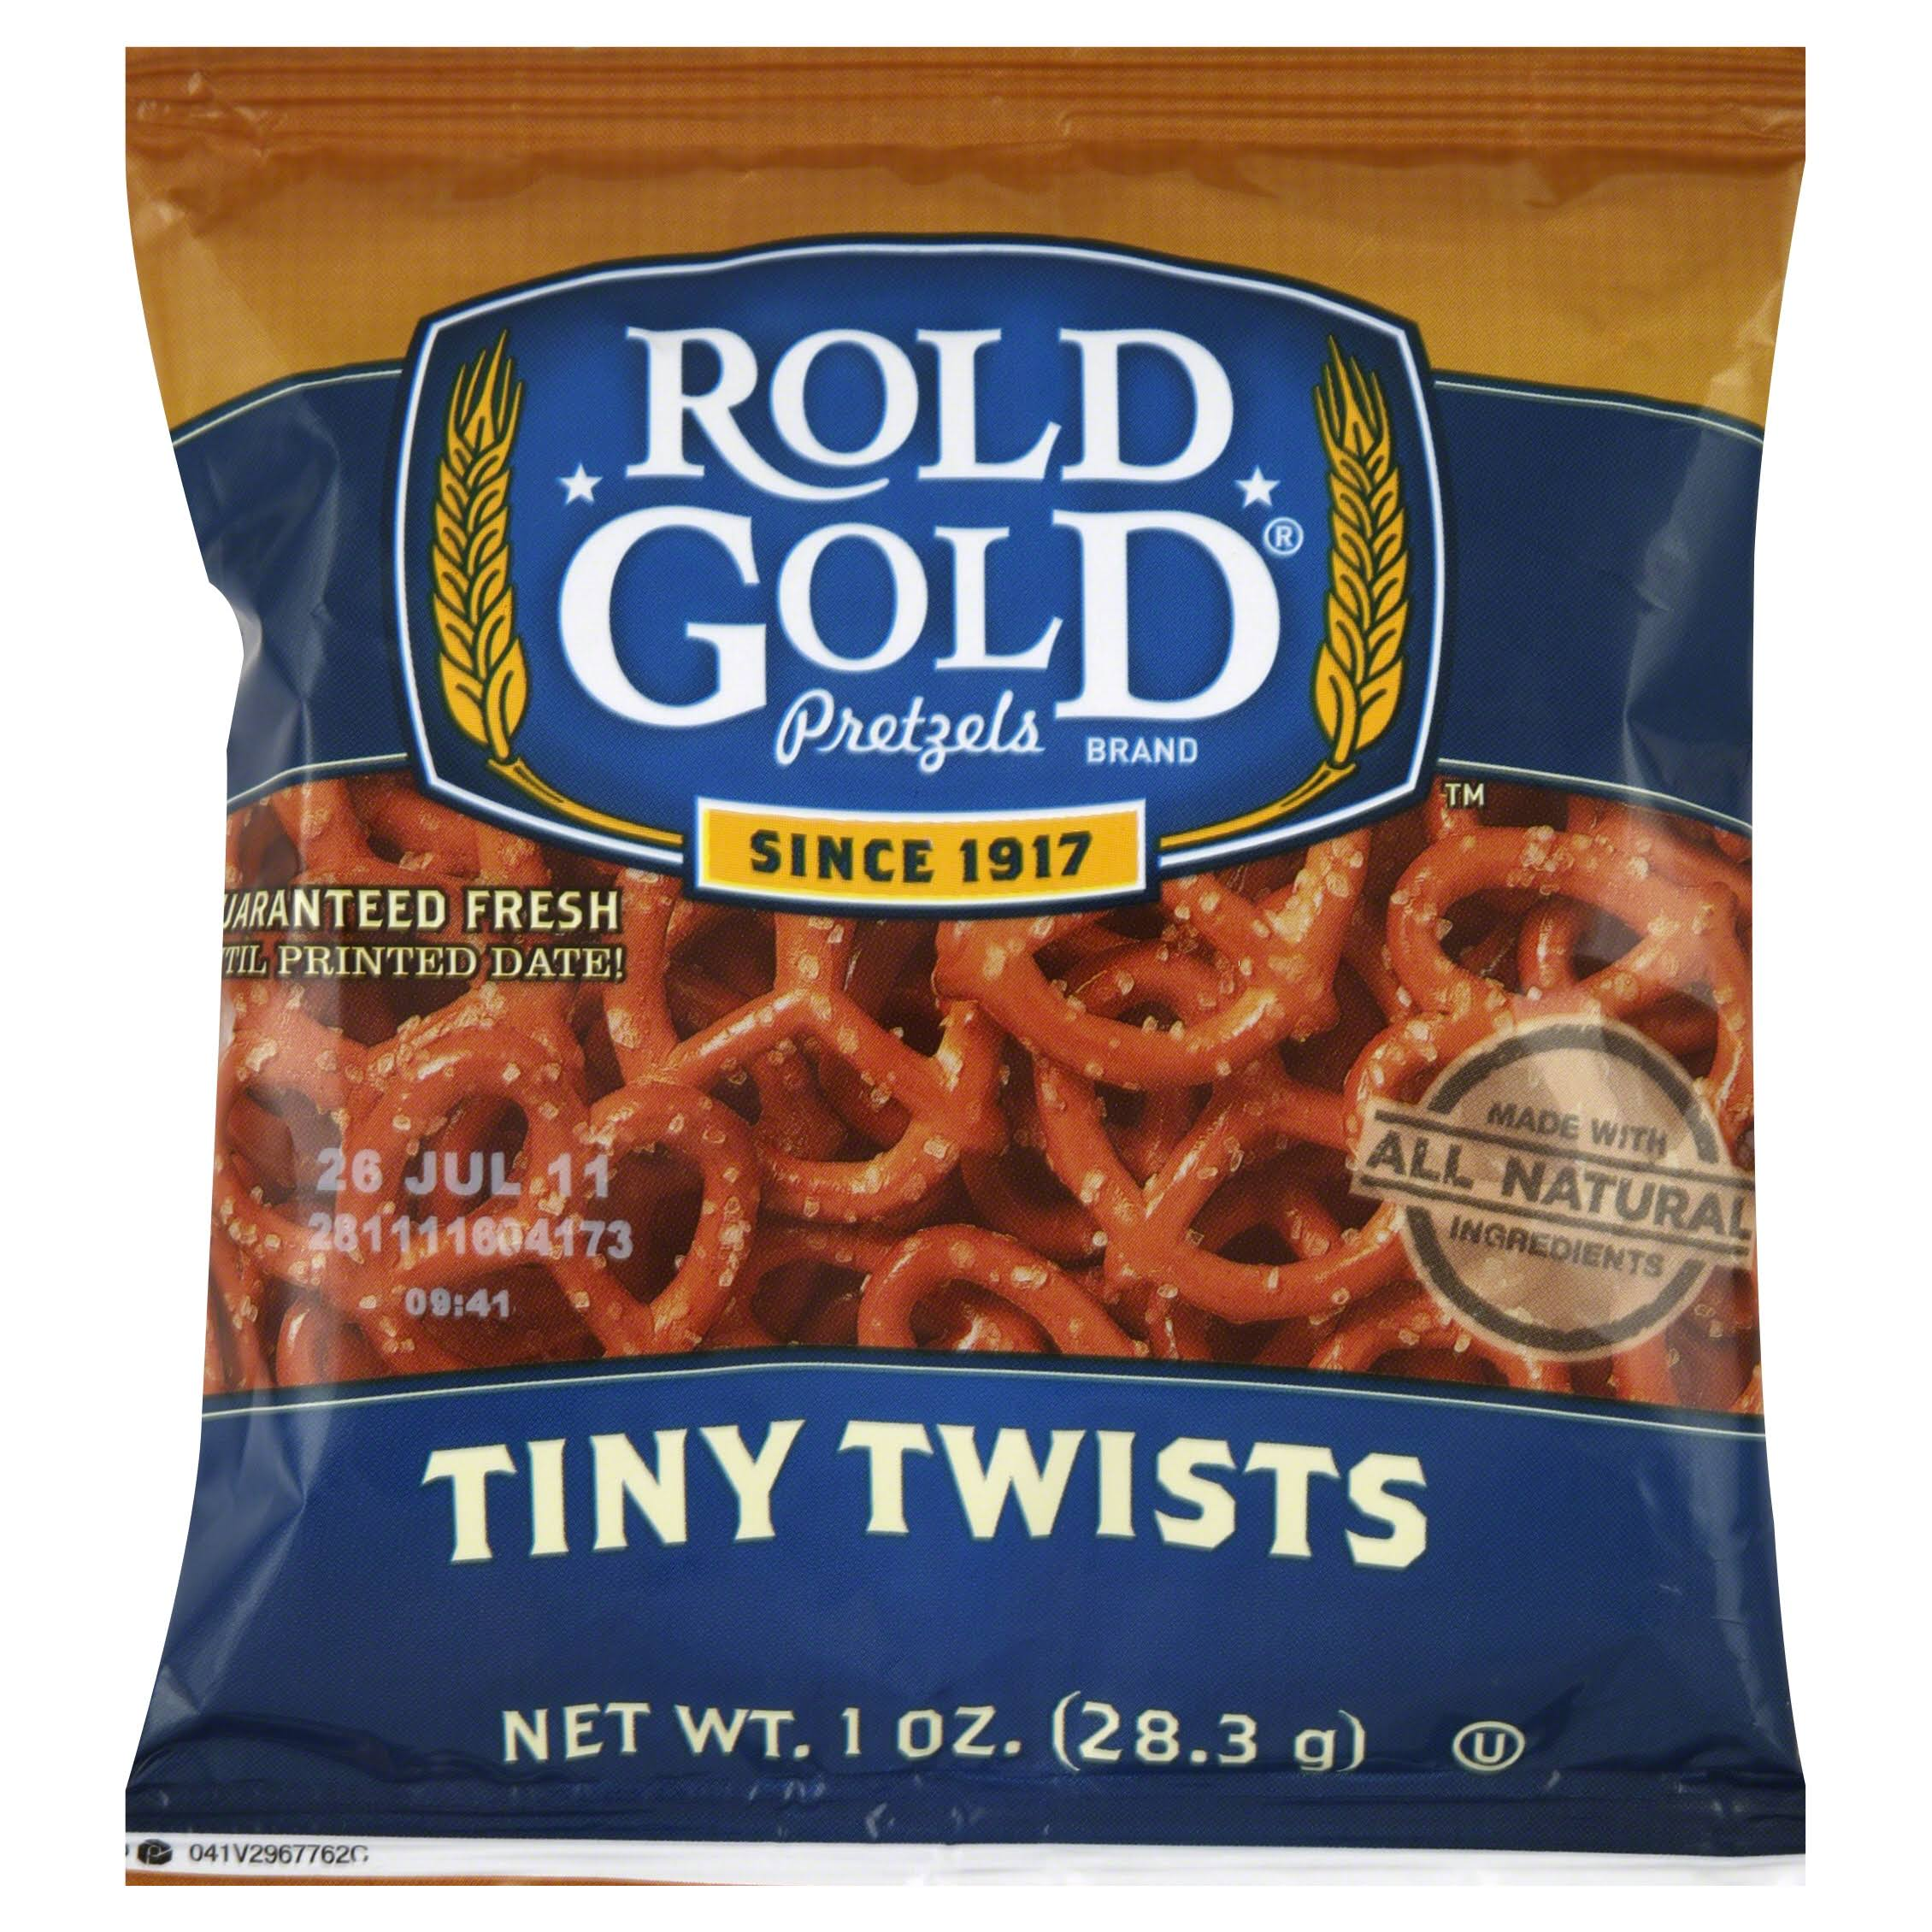 Rold Gold Tiny Twists Pretzels - Original, 1oz